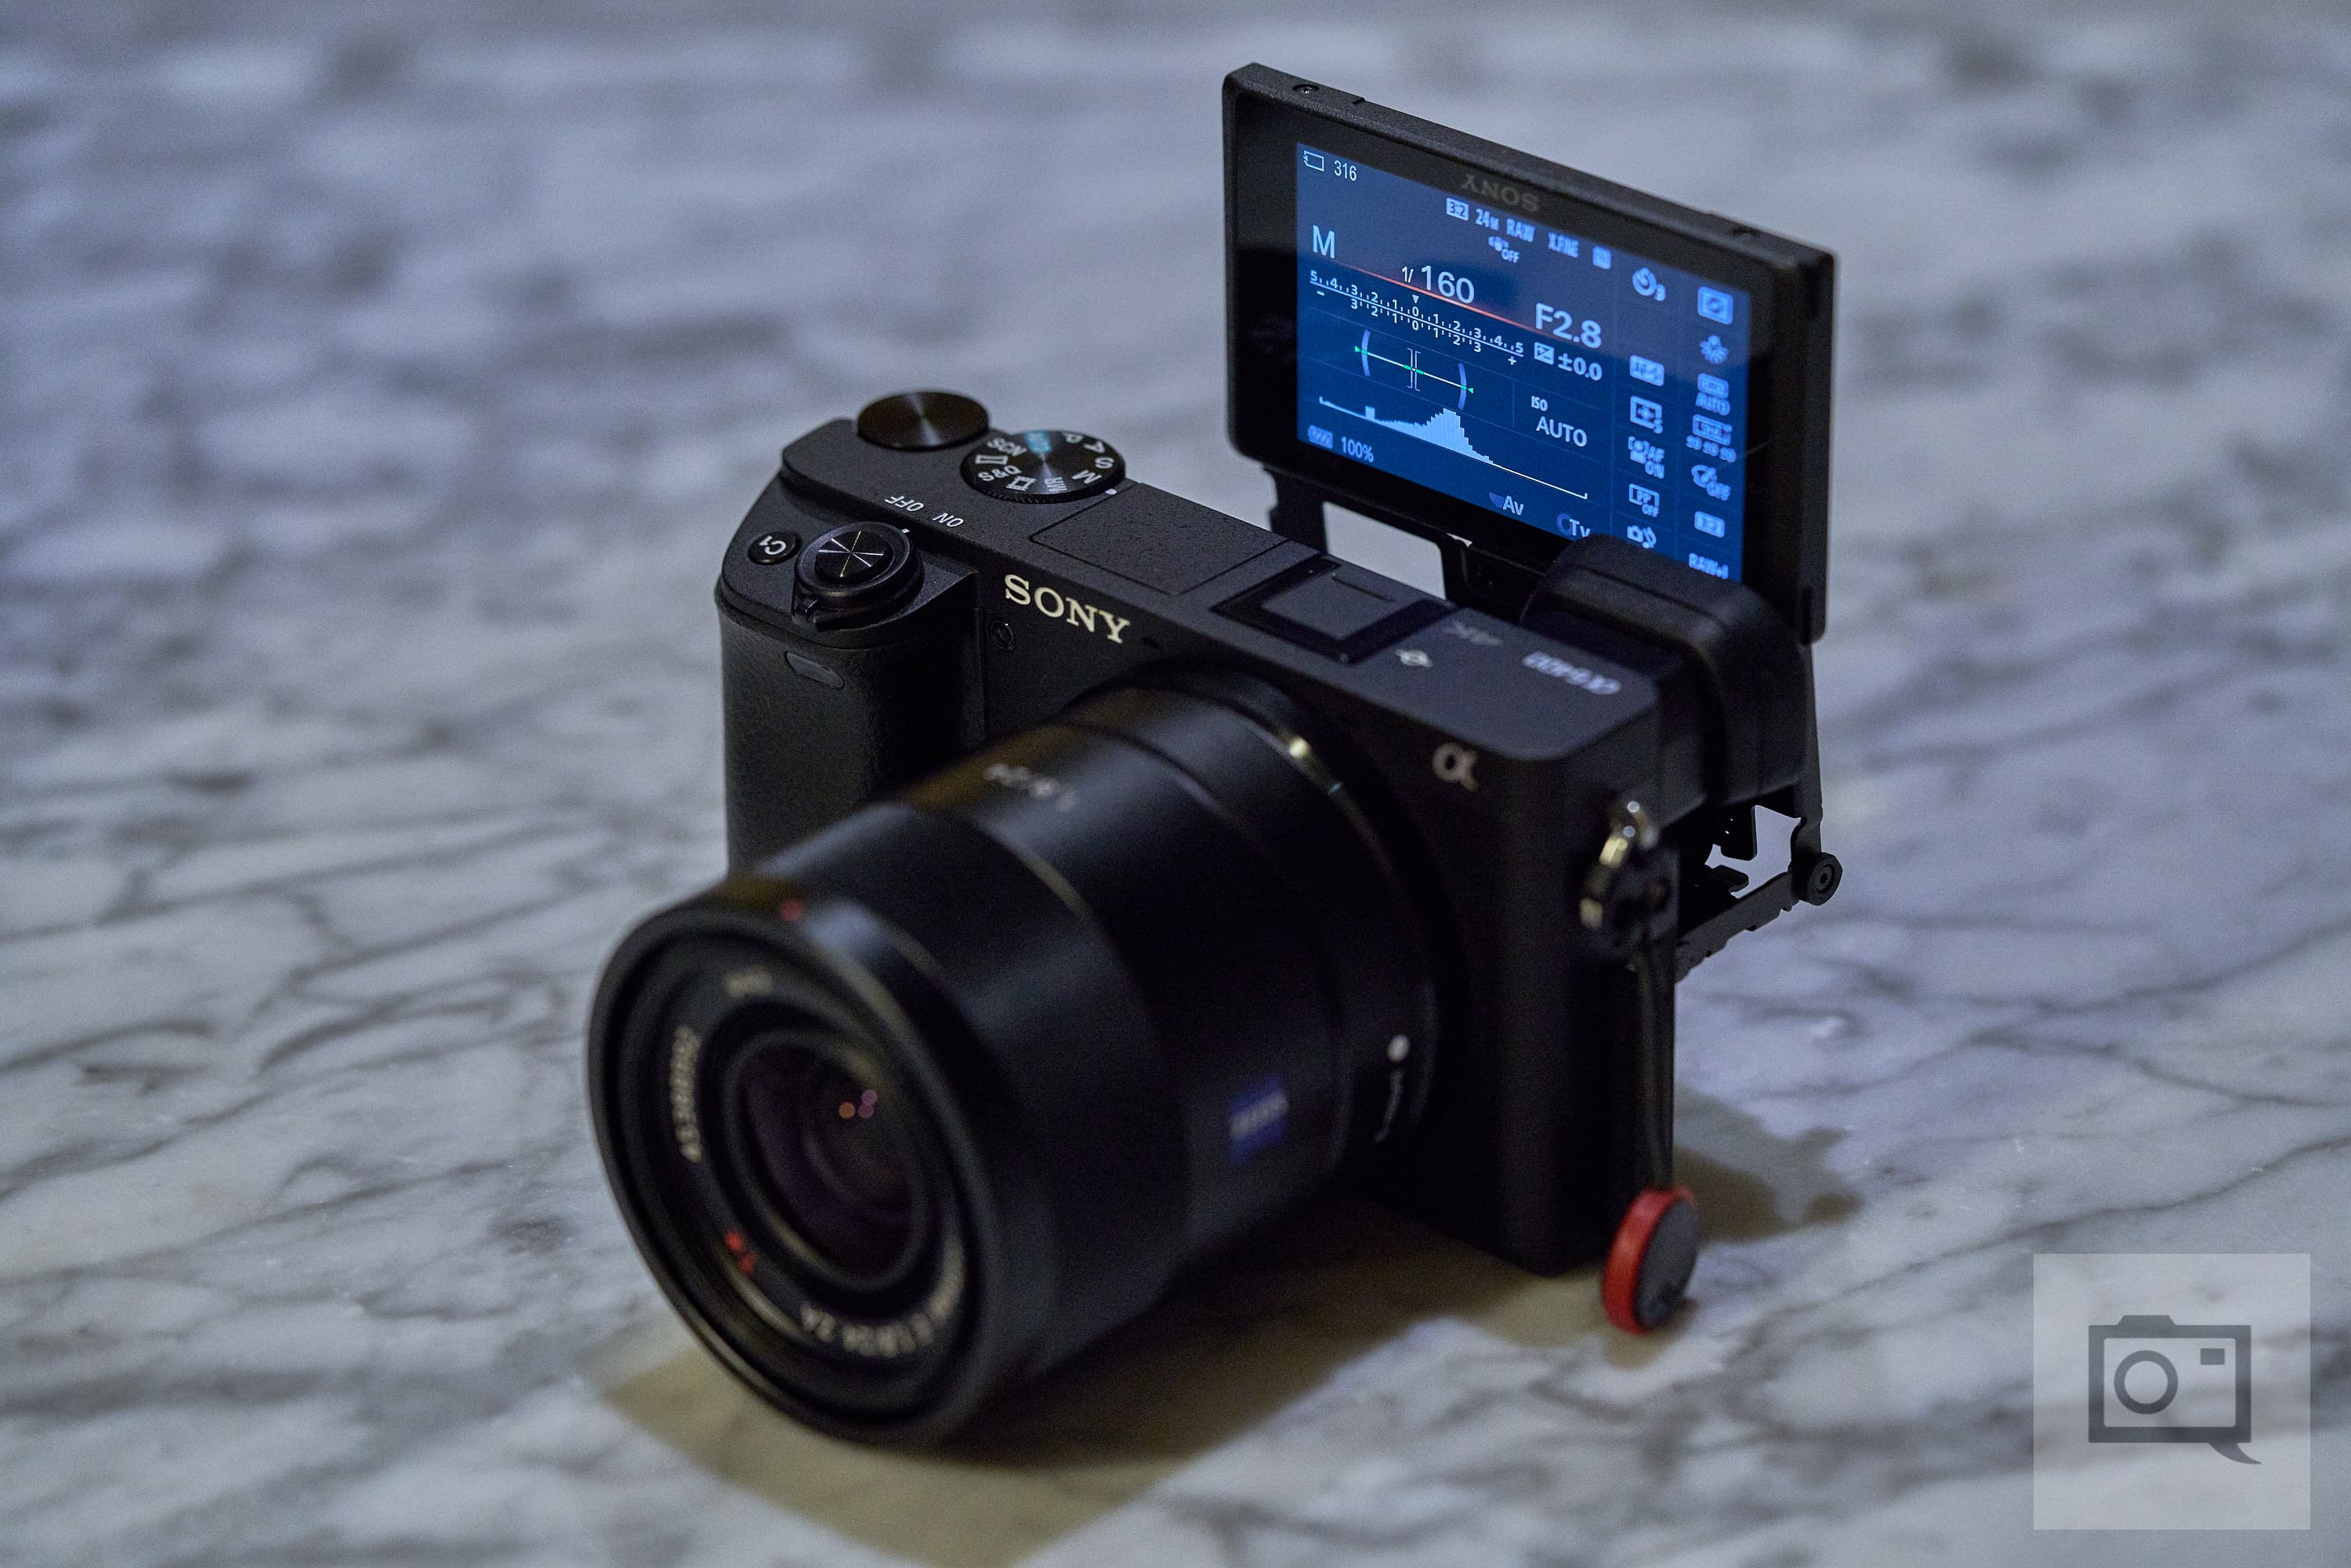 Review: Sony a6400 (The Sony a9 with an APS-C Sensor)